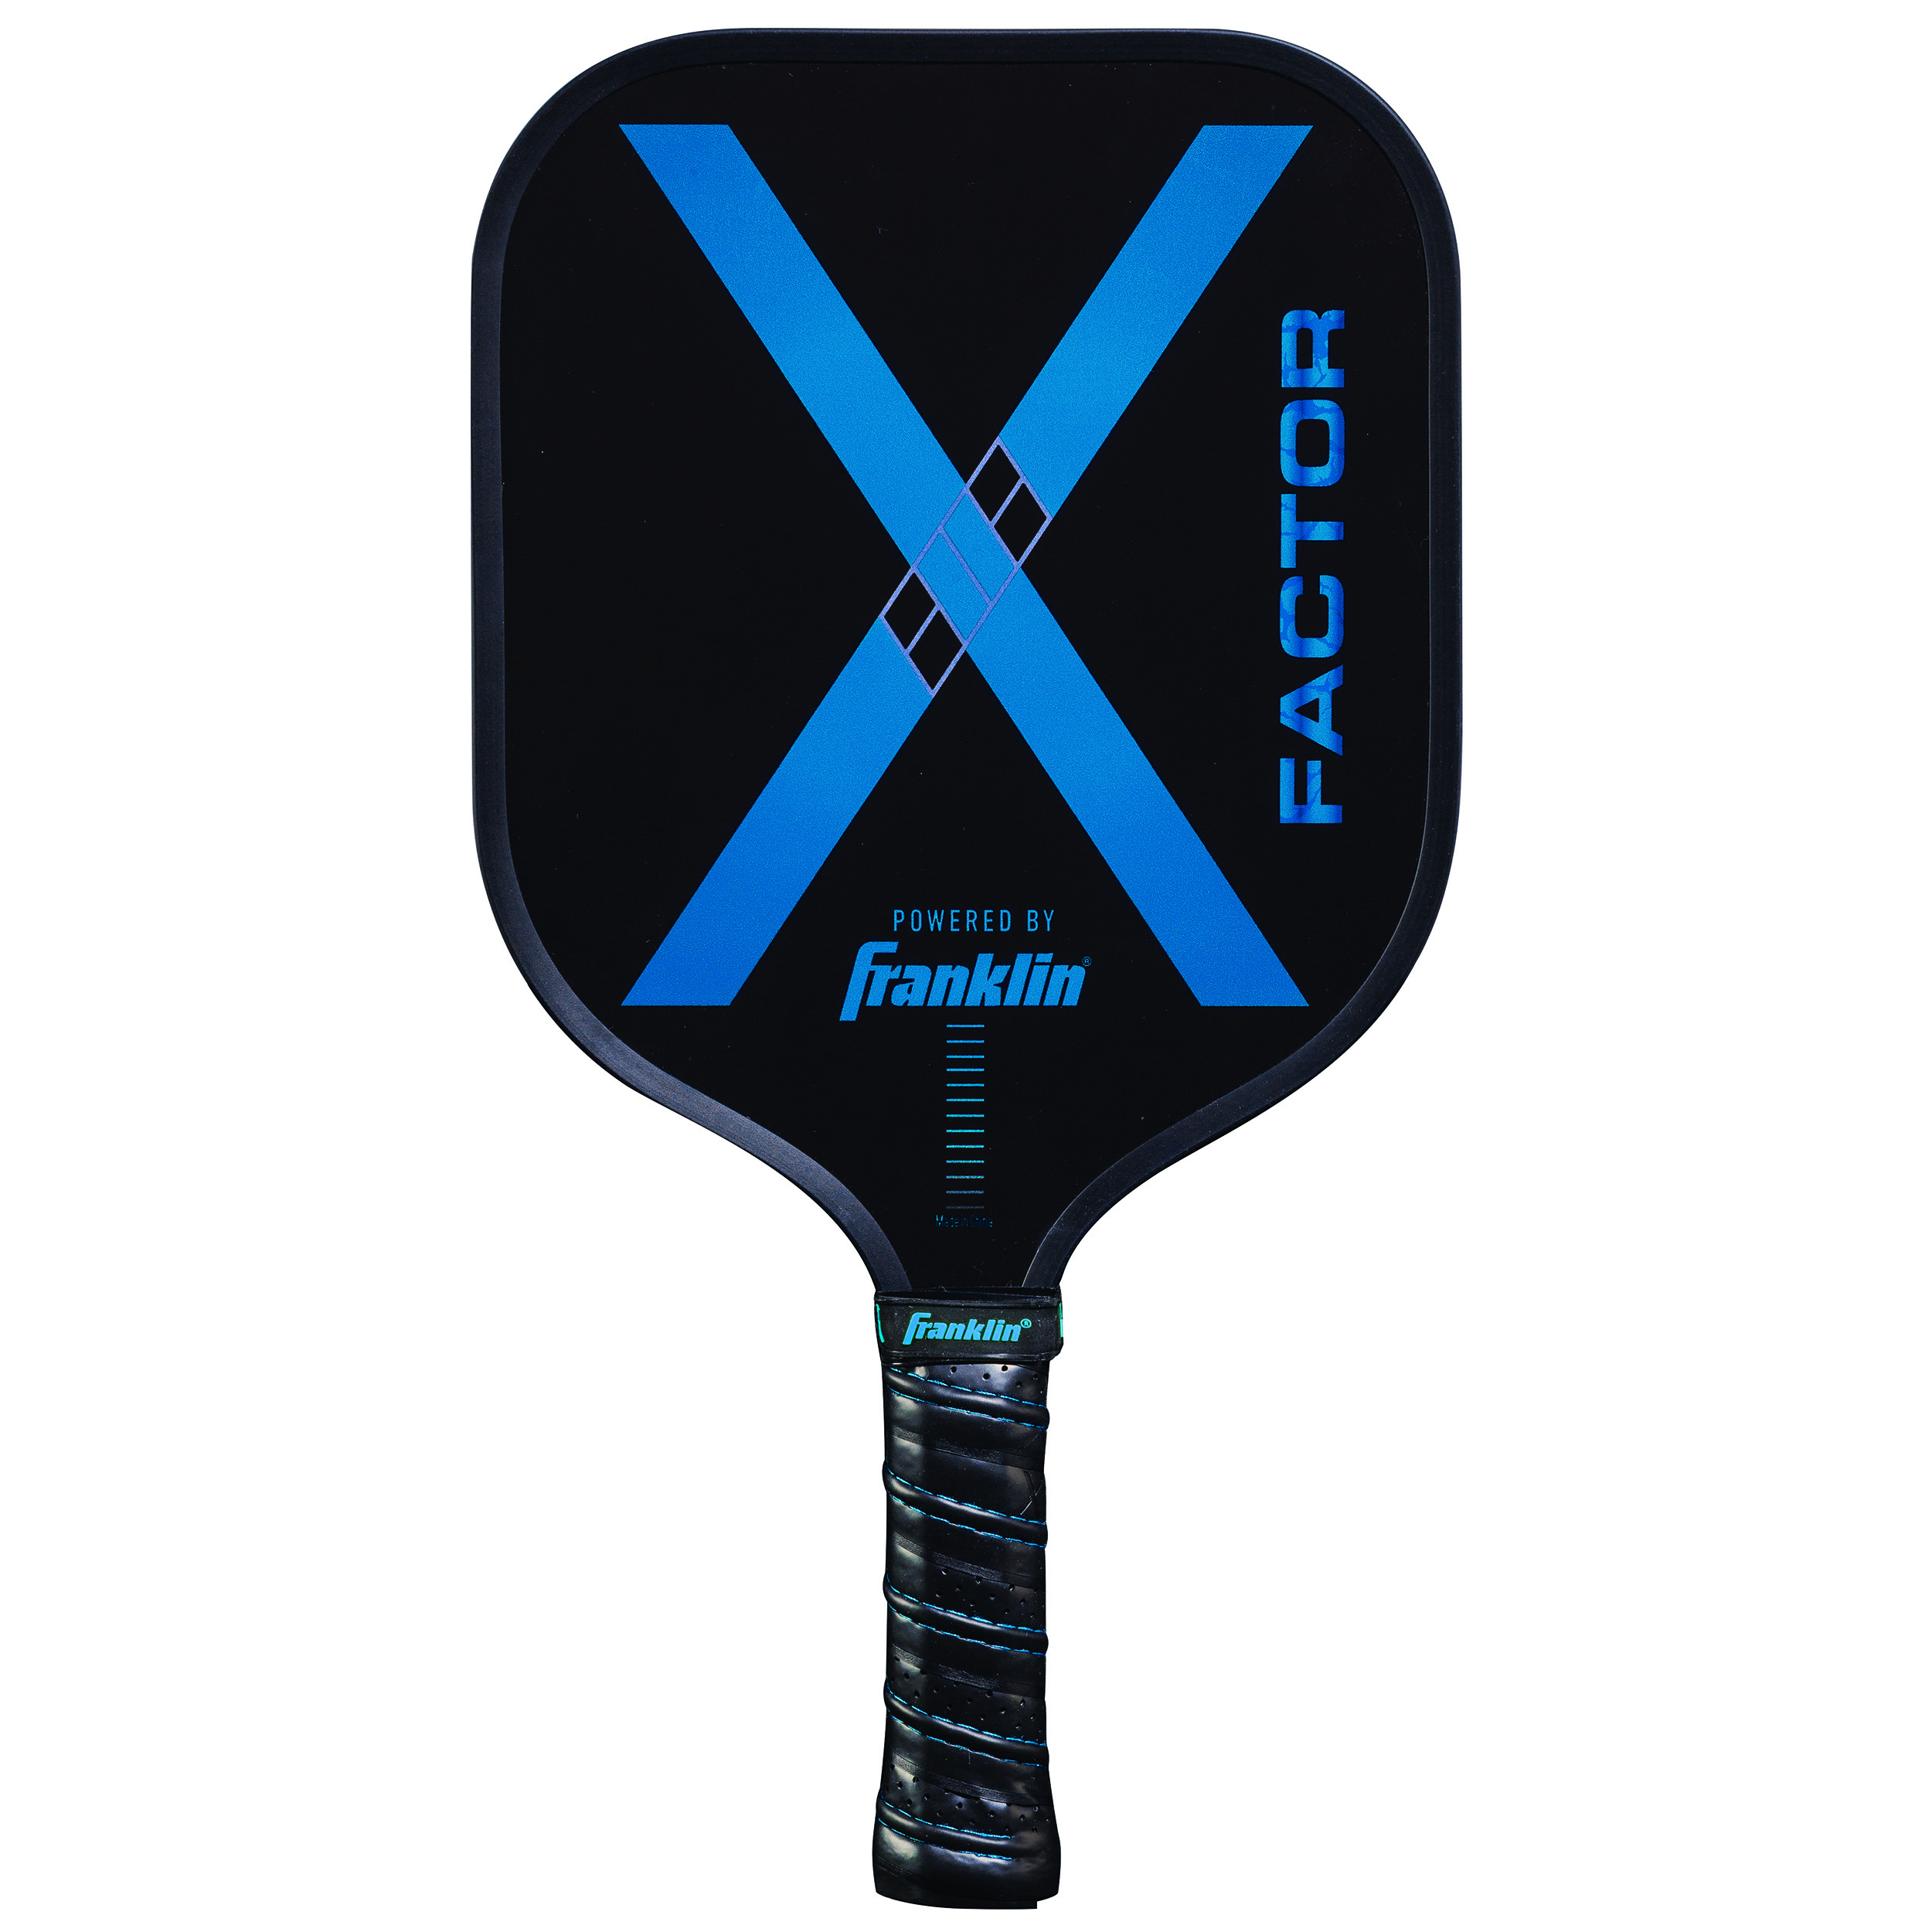 Pickleball-X Factor Performance Carbon Fiber Paddle - USAPA Approved